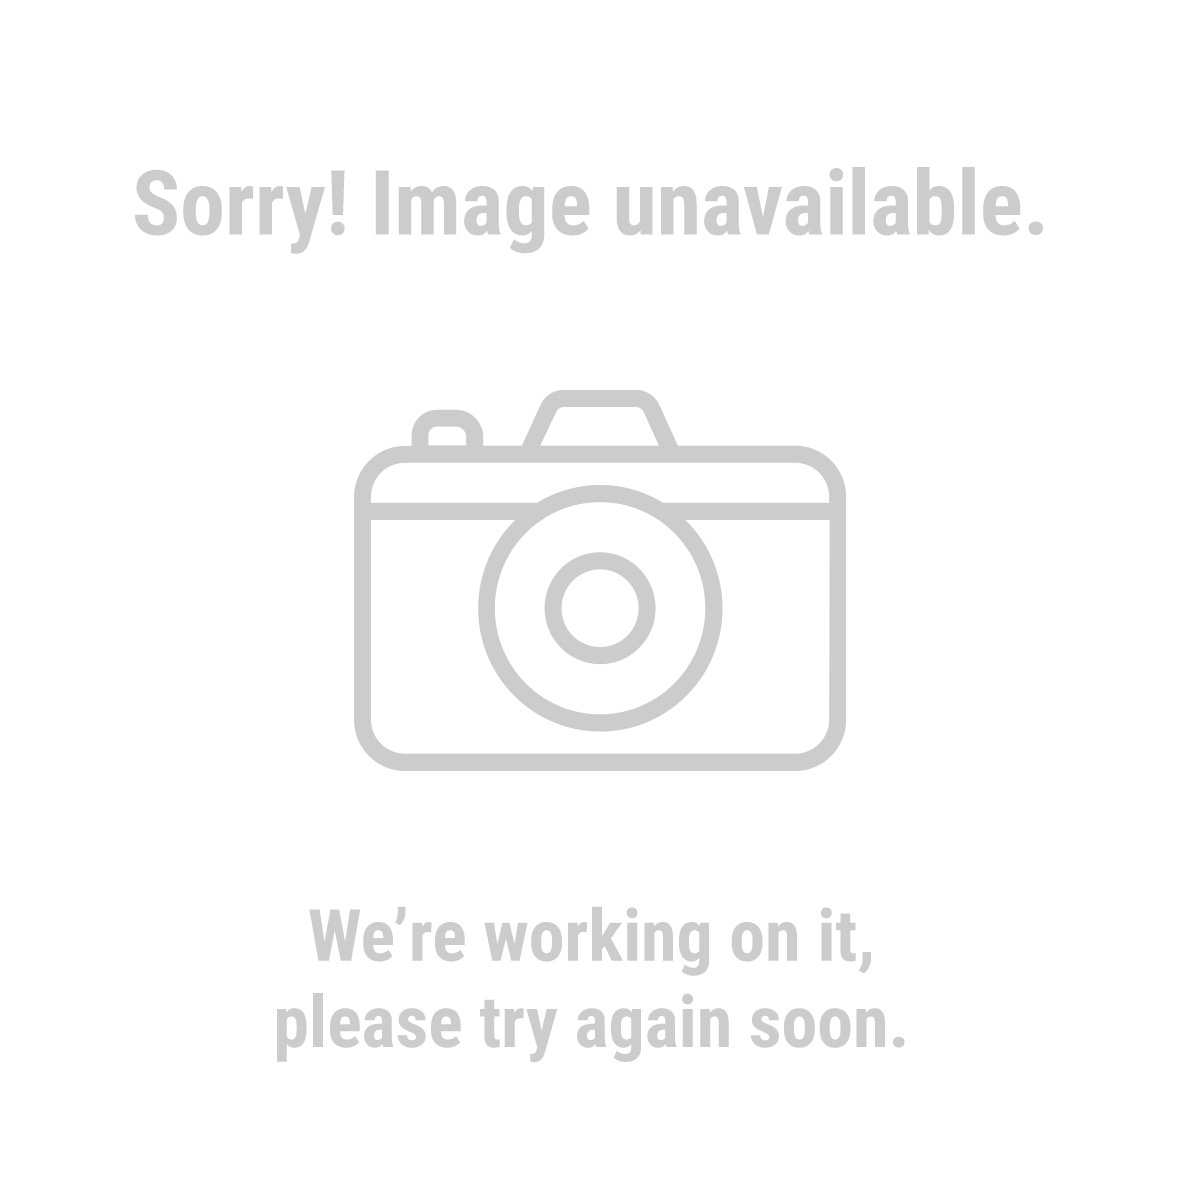 Western Safety 68695 9 Piece Heat Gun Accessory Kit